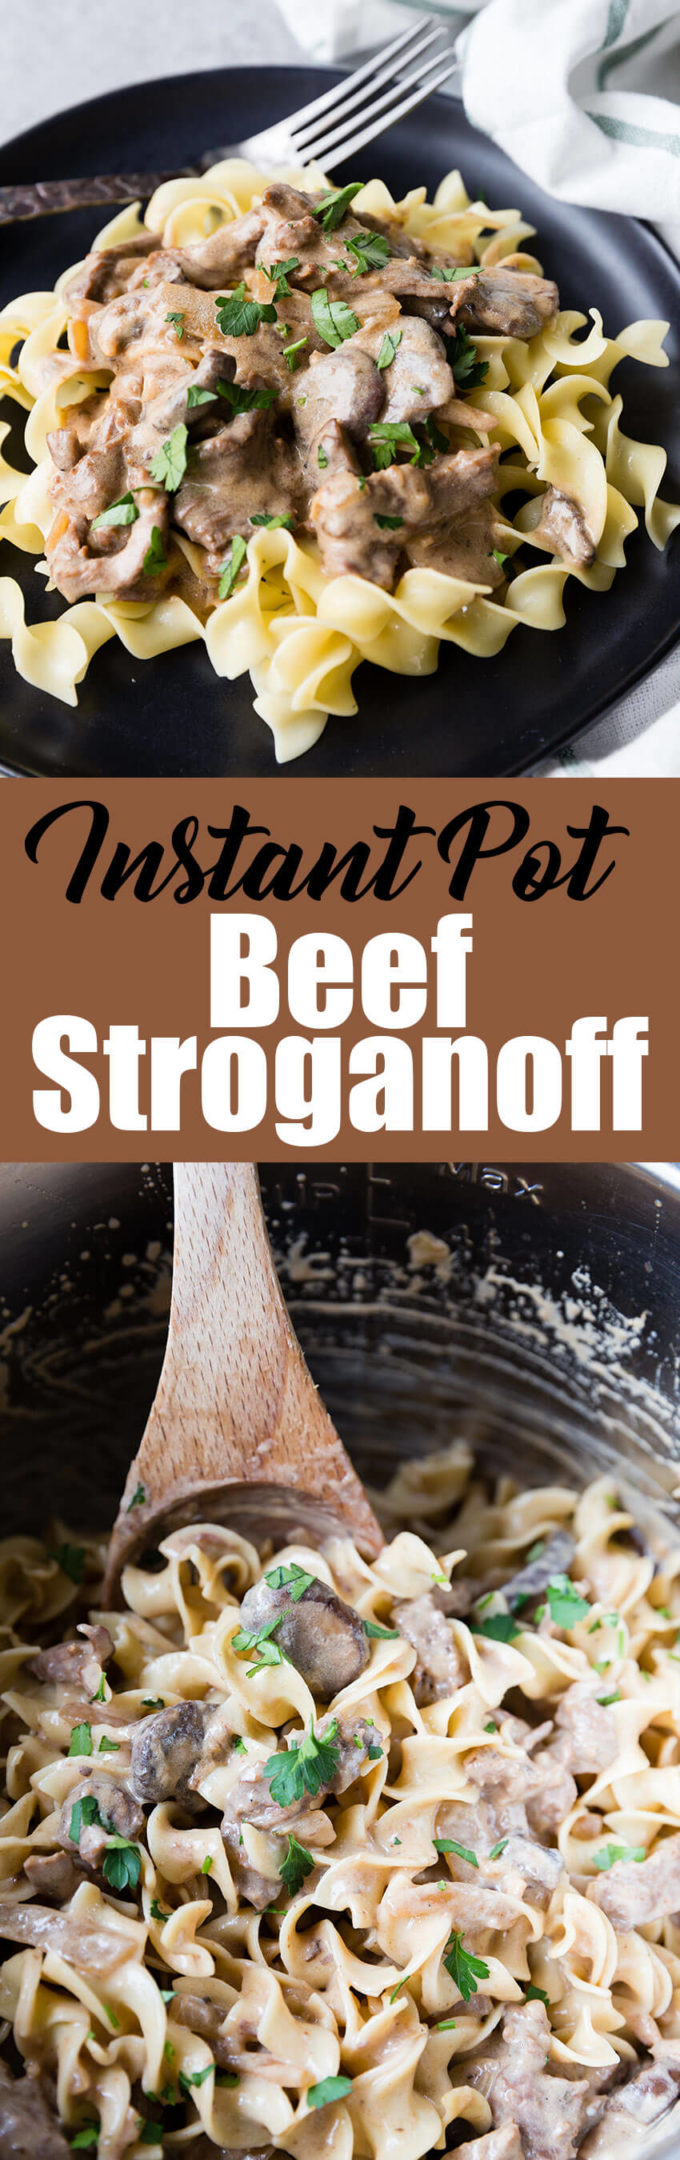 Instant Pot Beef Stroganoff: tender flavorful beef, hearty and creamy sauce, and plenty of mushrooms make this easy beef stroganoff an instant pot pressure cooker classic.